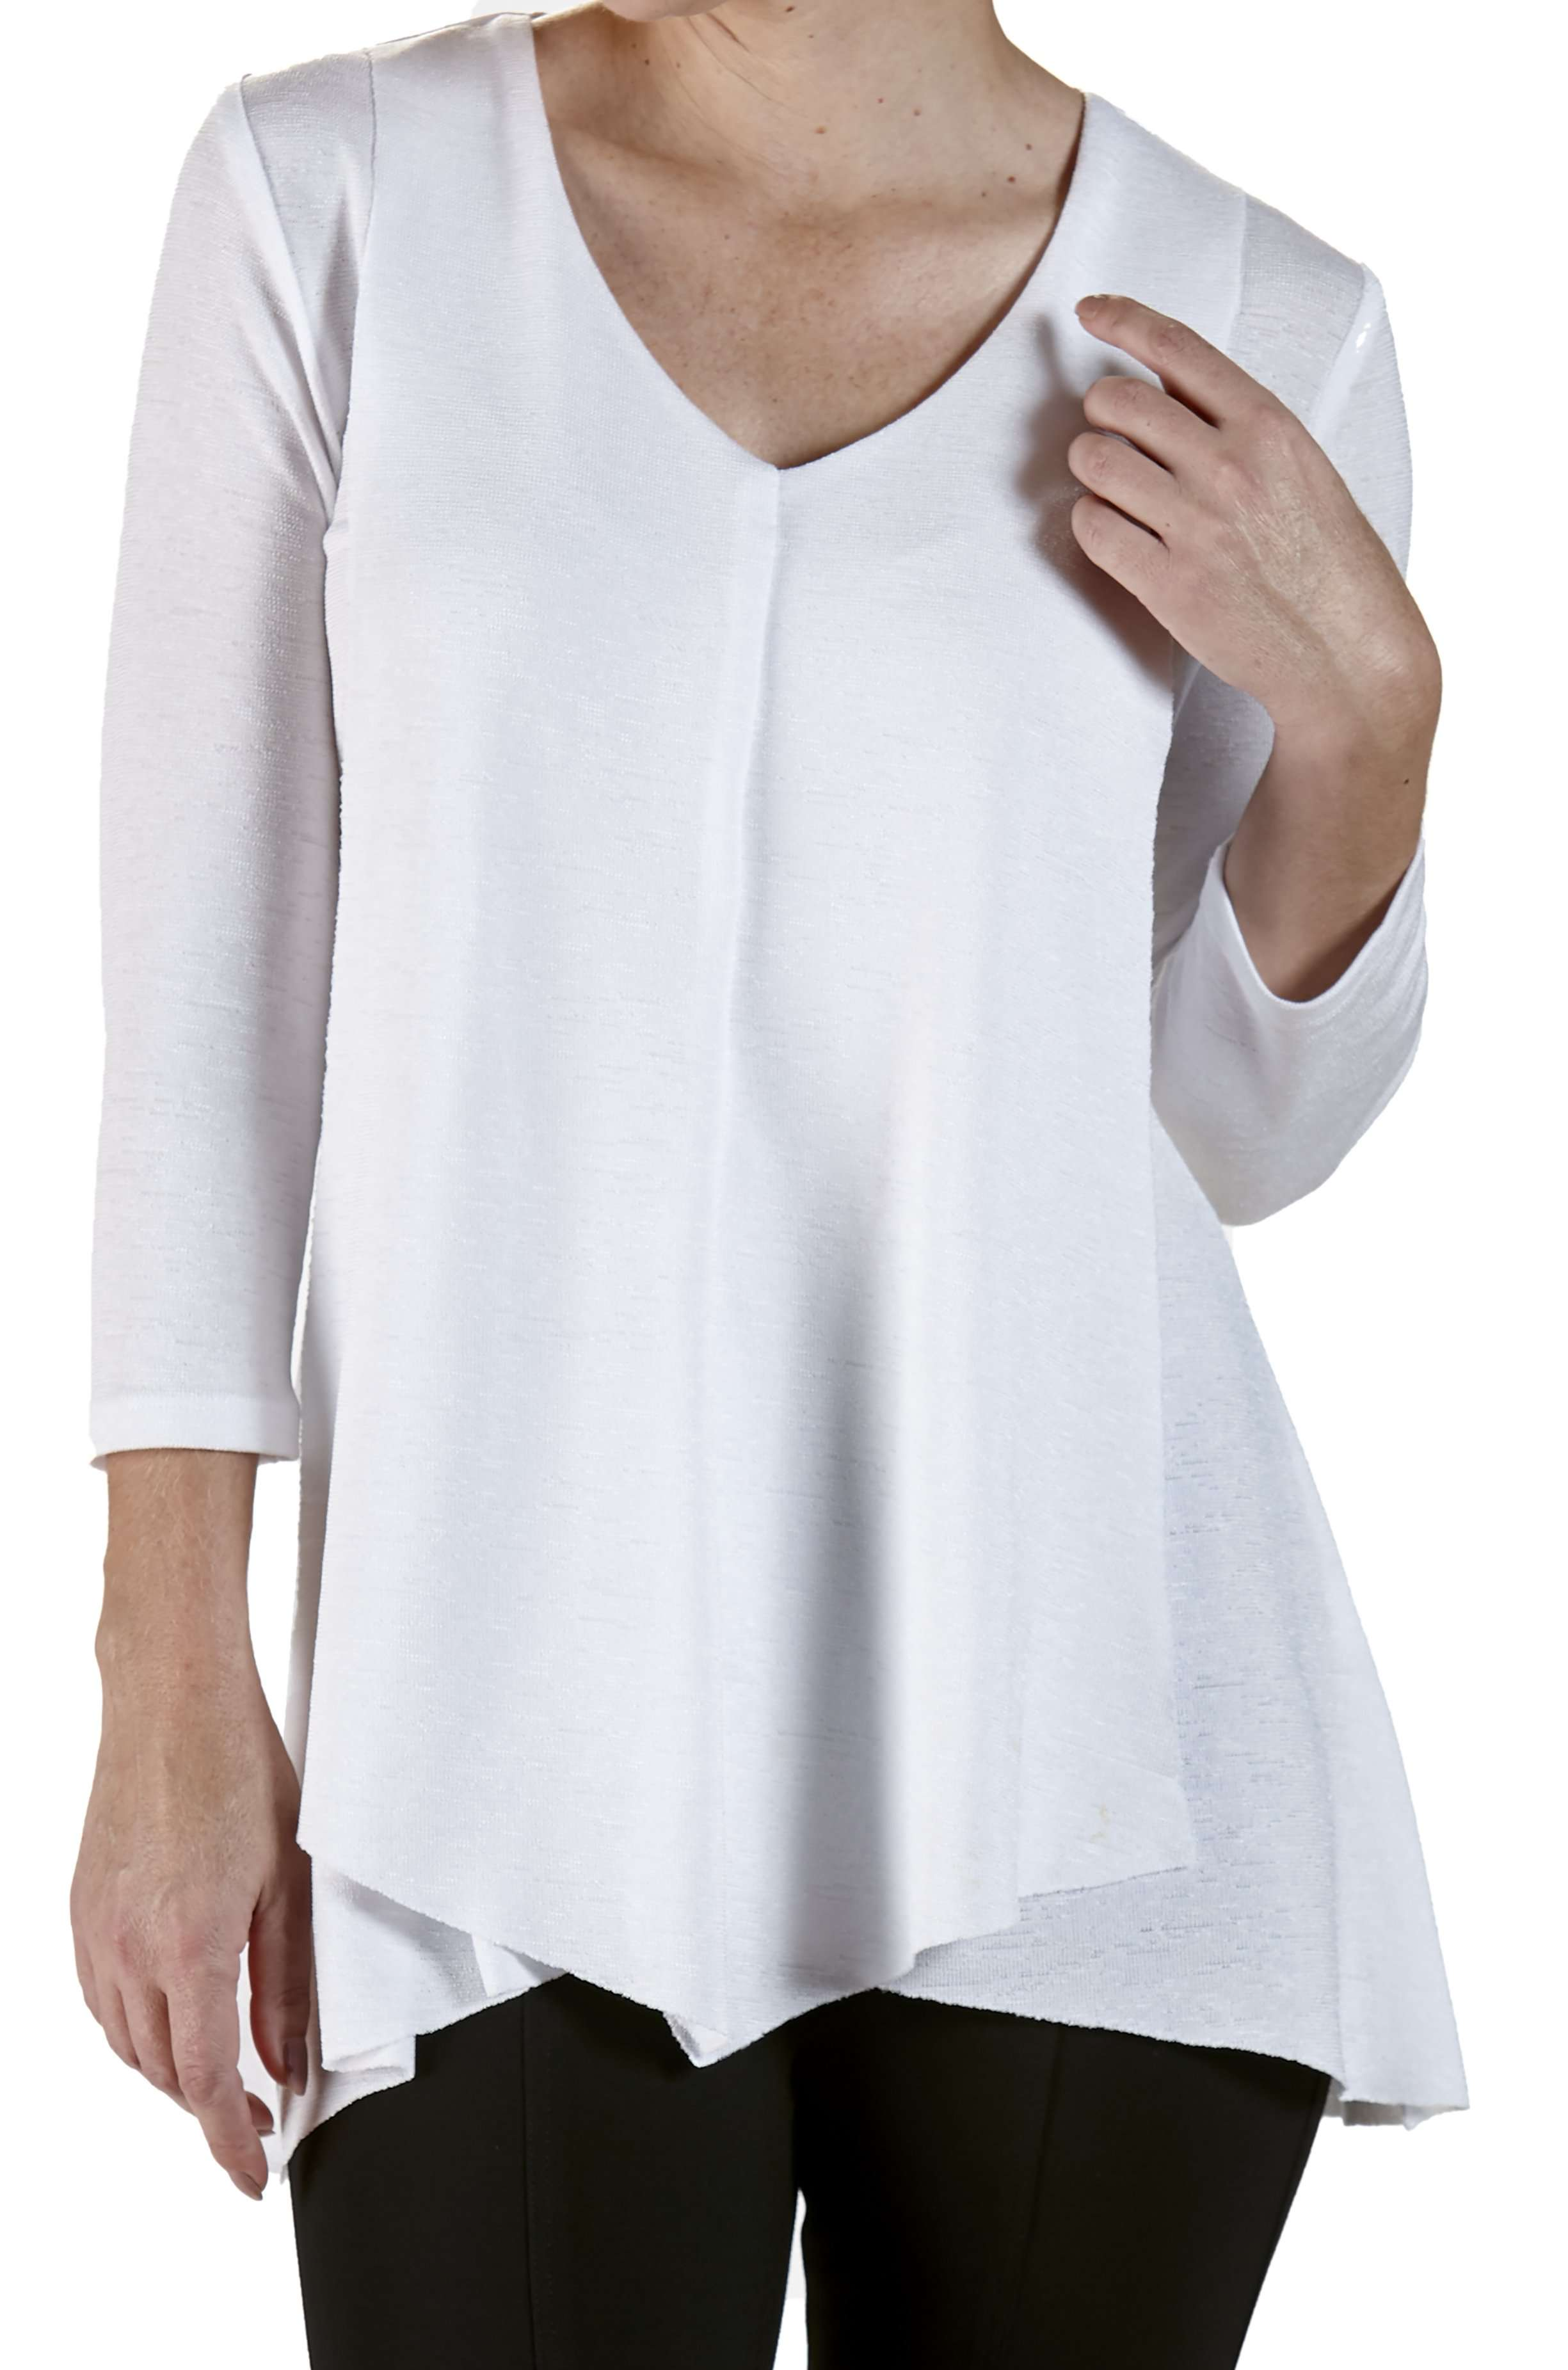 Women's  Long White Tunic Top - Yvonne Marie